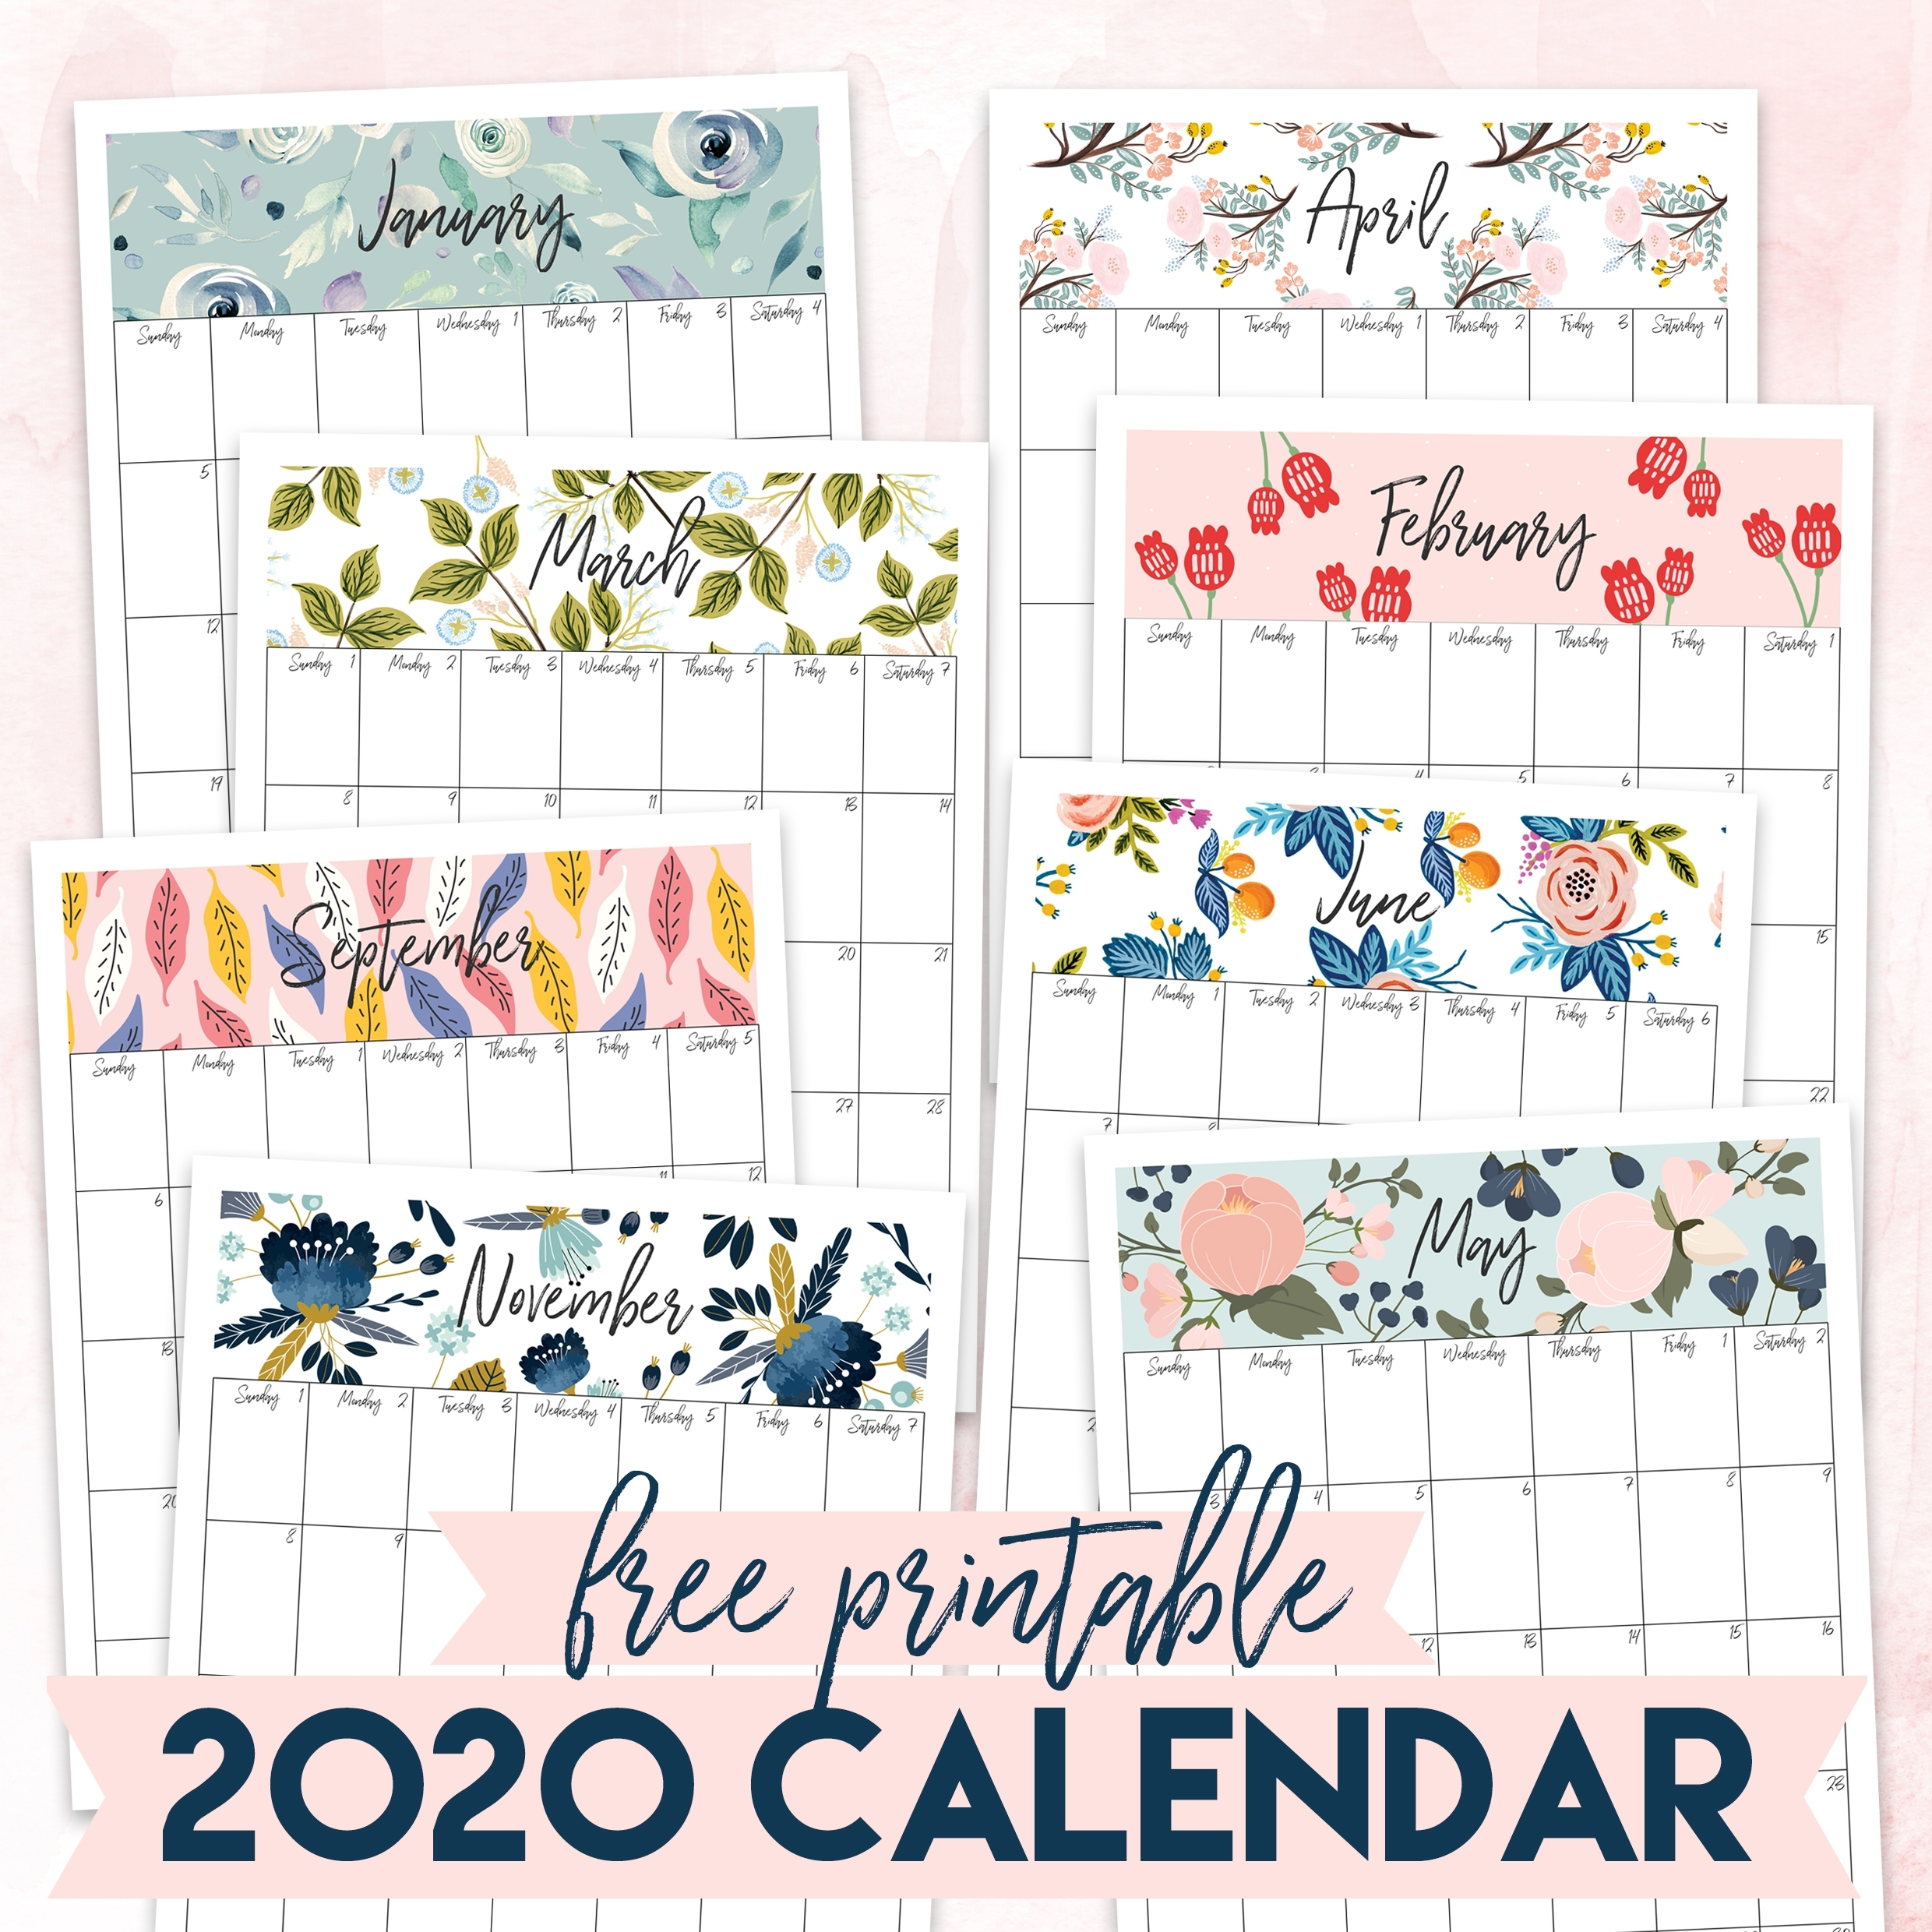 Free Printable 2020 Calendar - The Craft Patch within 8.5 X 11 Printable 2020 Calendar